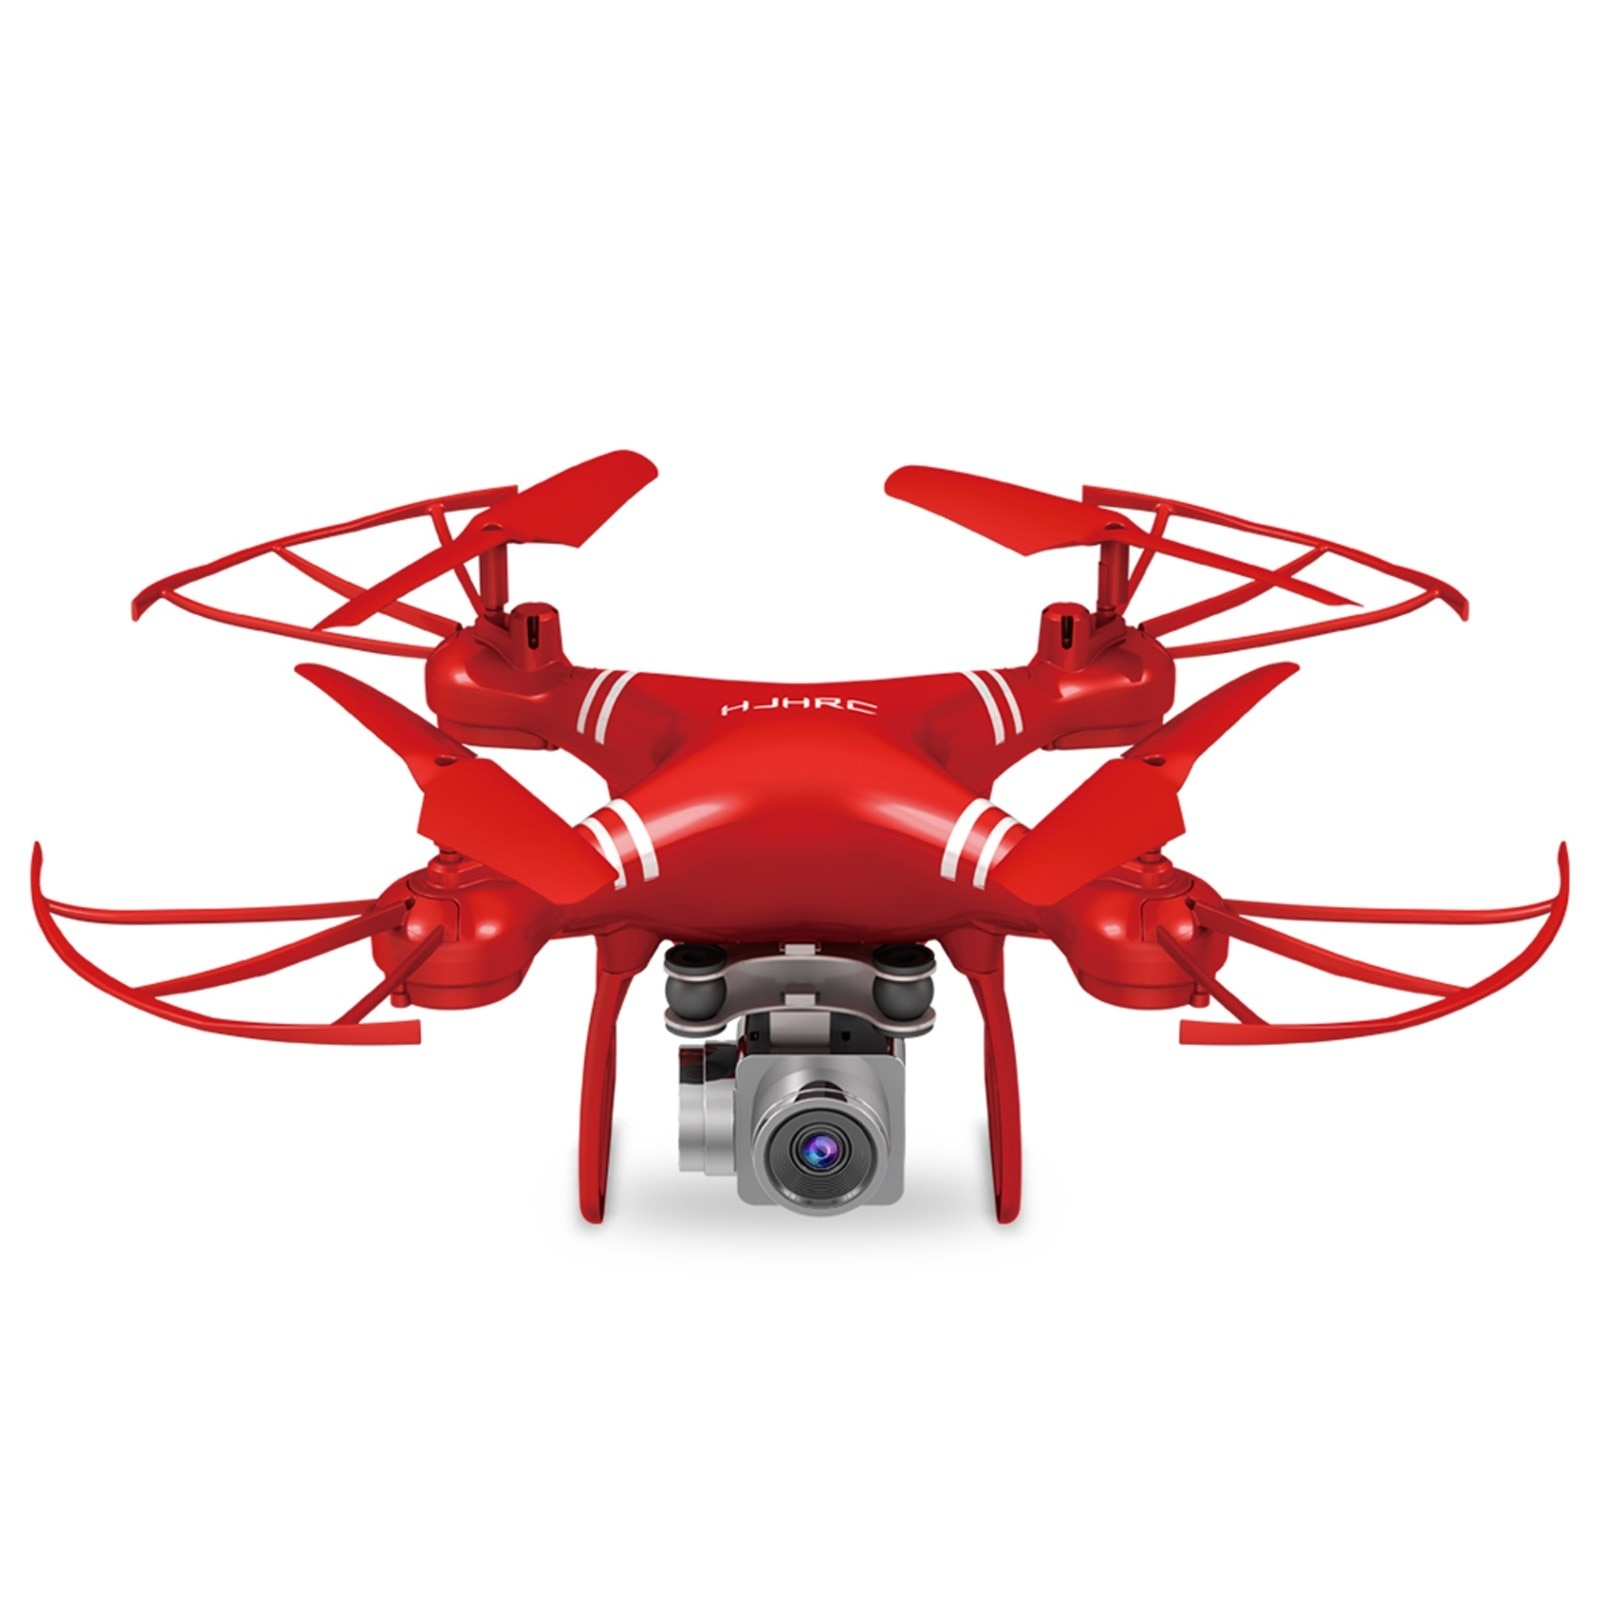 Hf67249a5ae384ec6818e0ec1c09f3ce5G - Hjhrc Four-axis Aerial Photography Aircraft Drone With Camera Hd 4k Wifi Fpv Foldable Drone Height Holding Headless Quadcopter